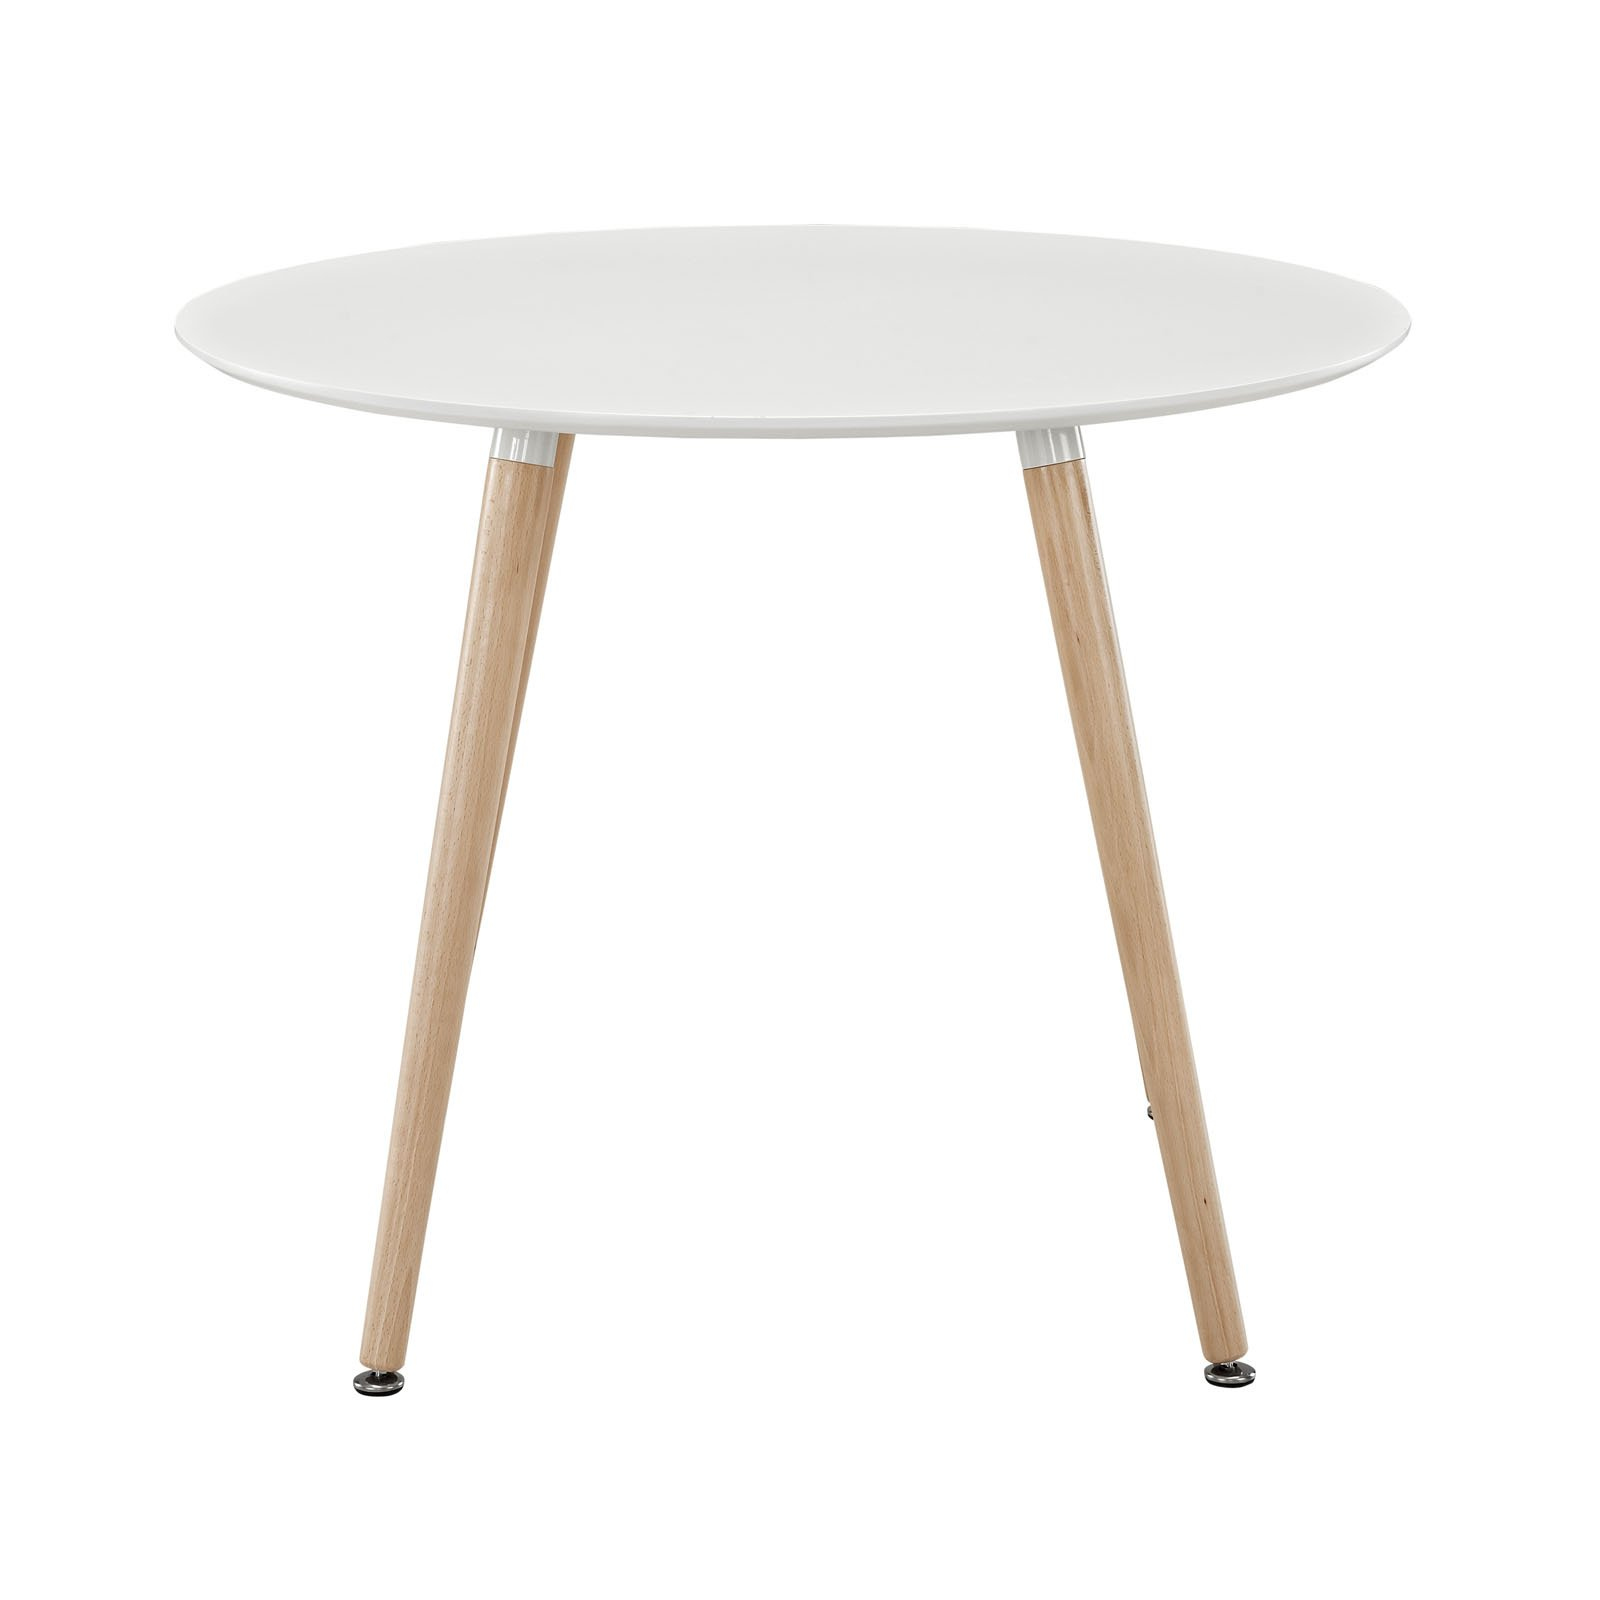 Modway Track Circular Dining Table in White by Modway (Image #2)